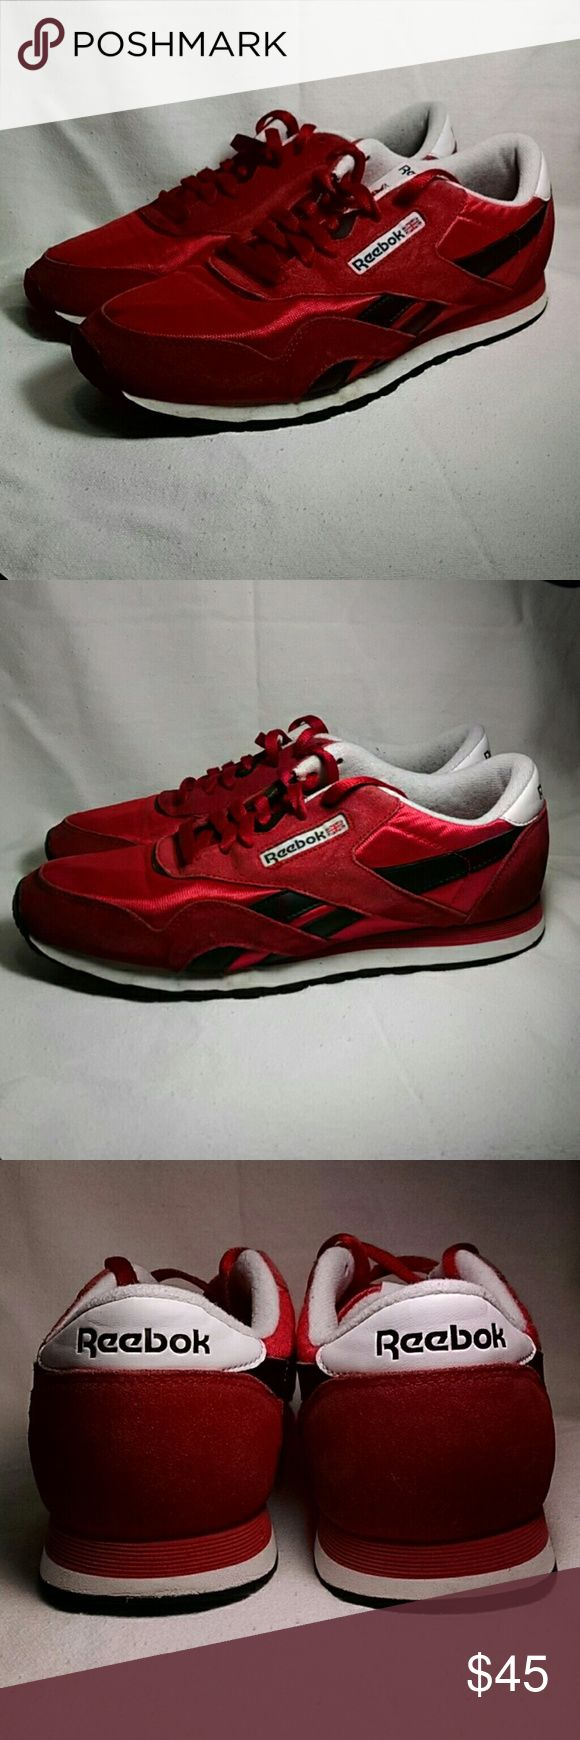 Reebok Classic Sneakers Men's Size 10 Reebok Classic Sneakers Men's size 10. Varsity Red and black. Upper canvas in excellent condition and soles show little noticable wear. Reebok Shoes Sneakers